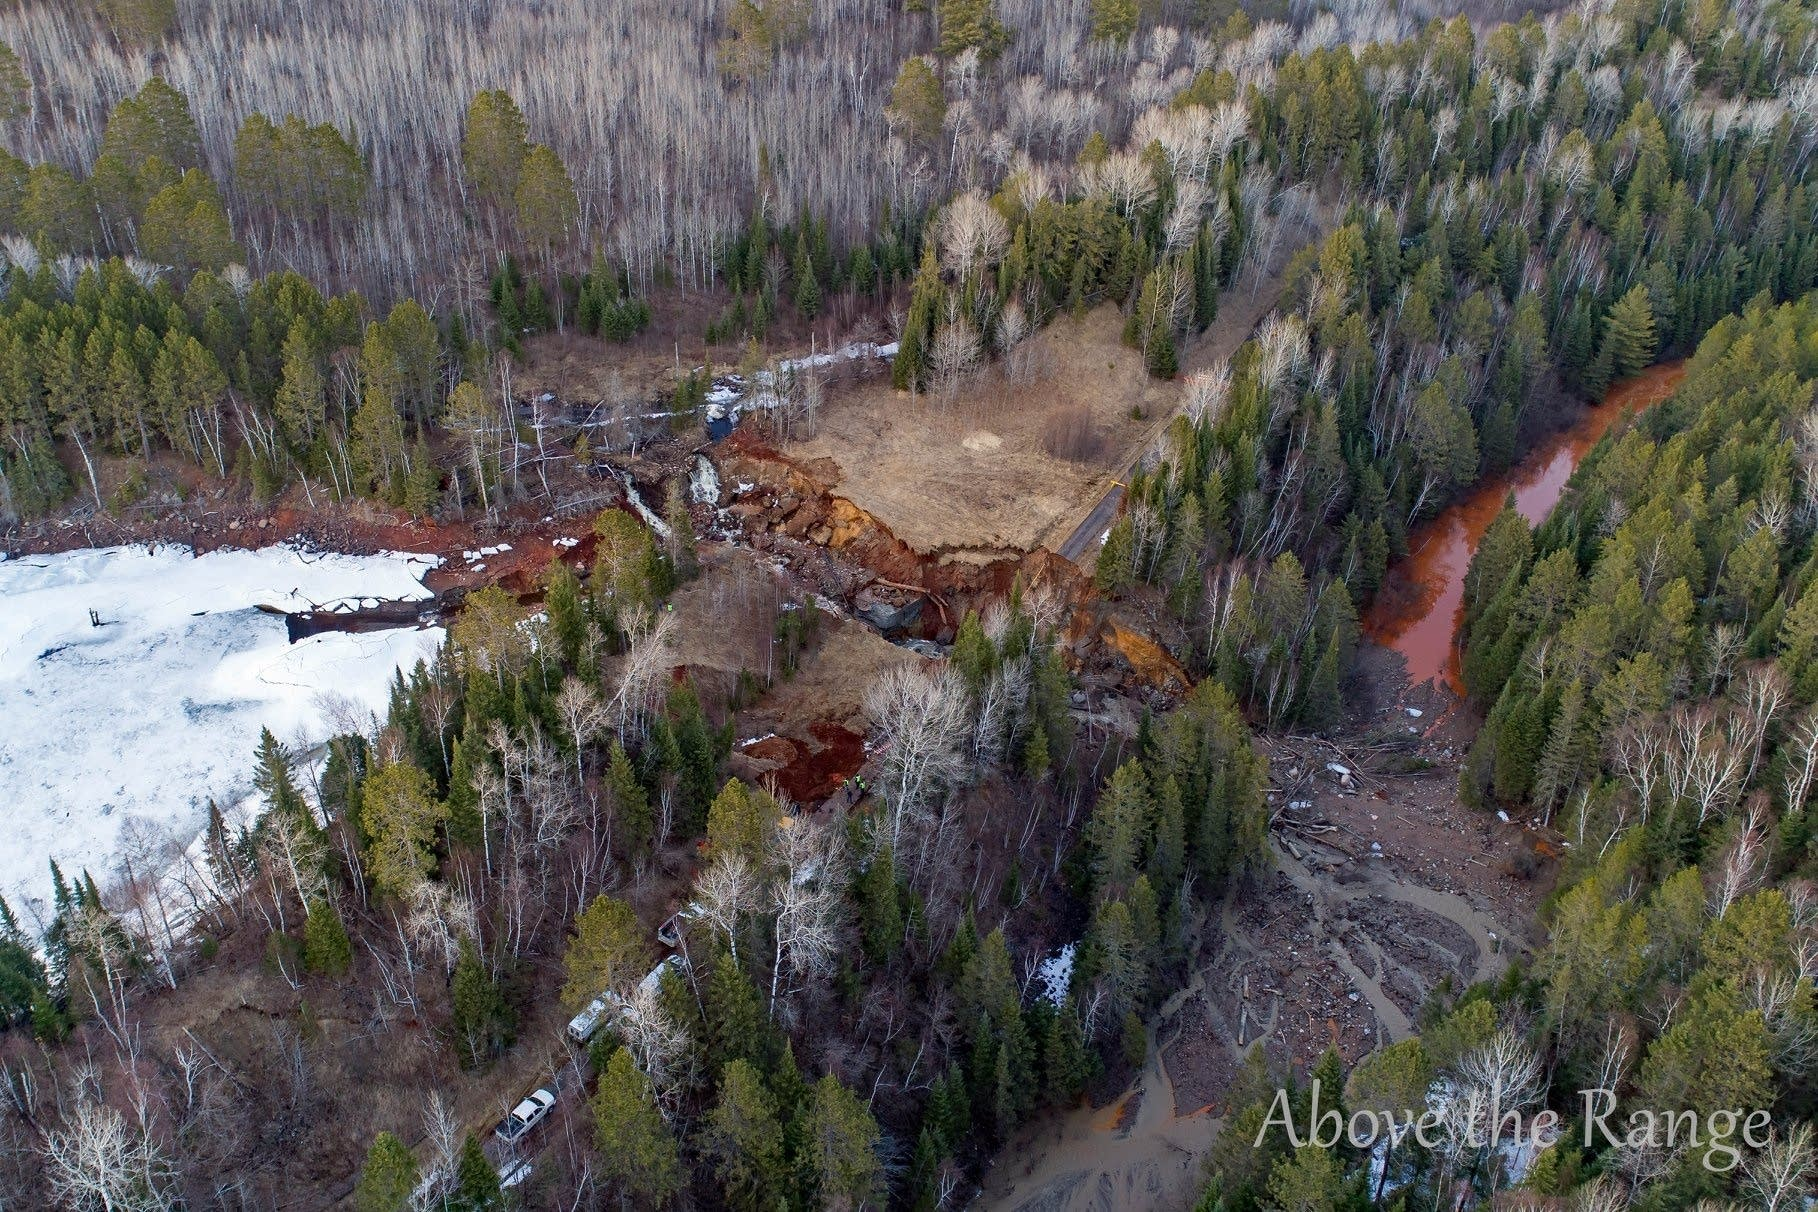 A bird's eye view of the washout near Biwabik on April 24, 2018.